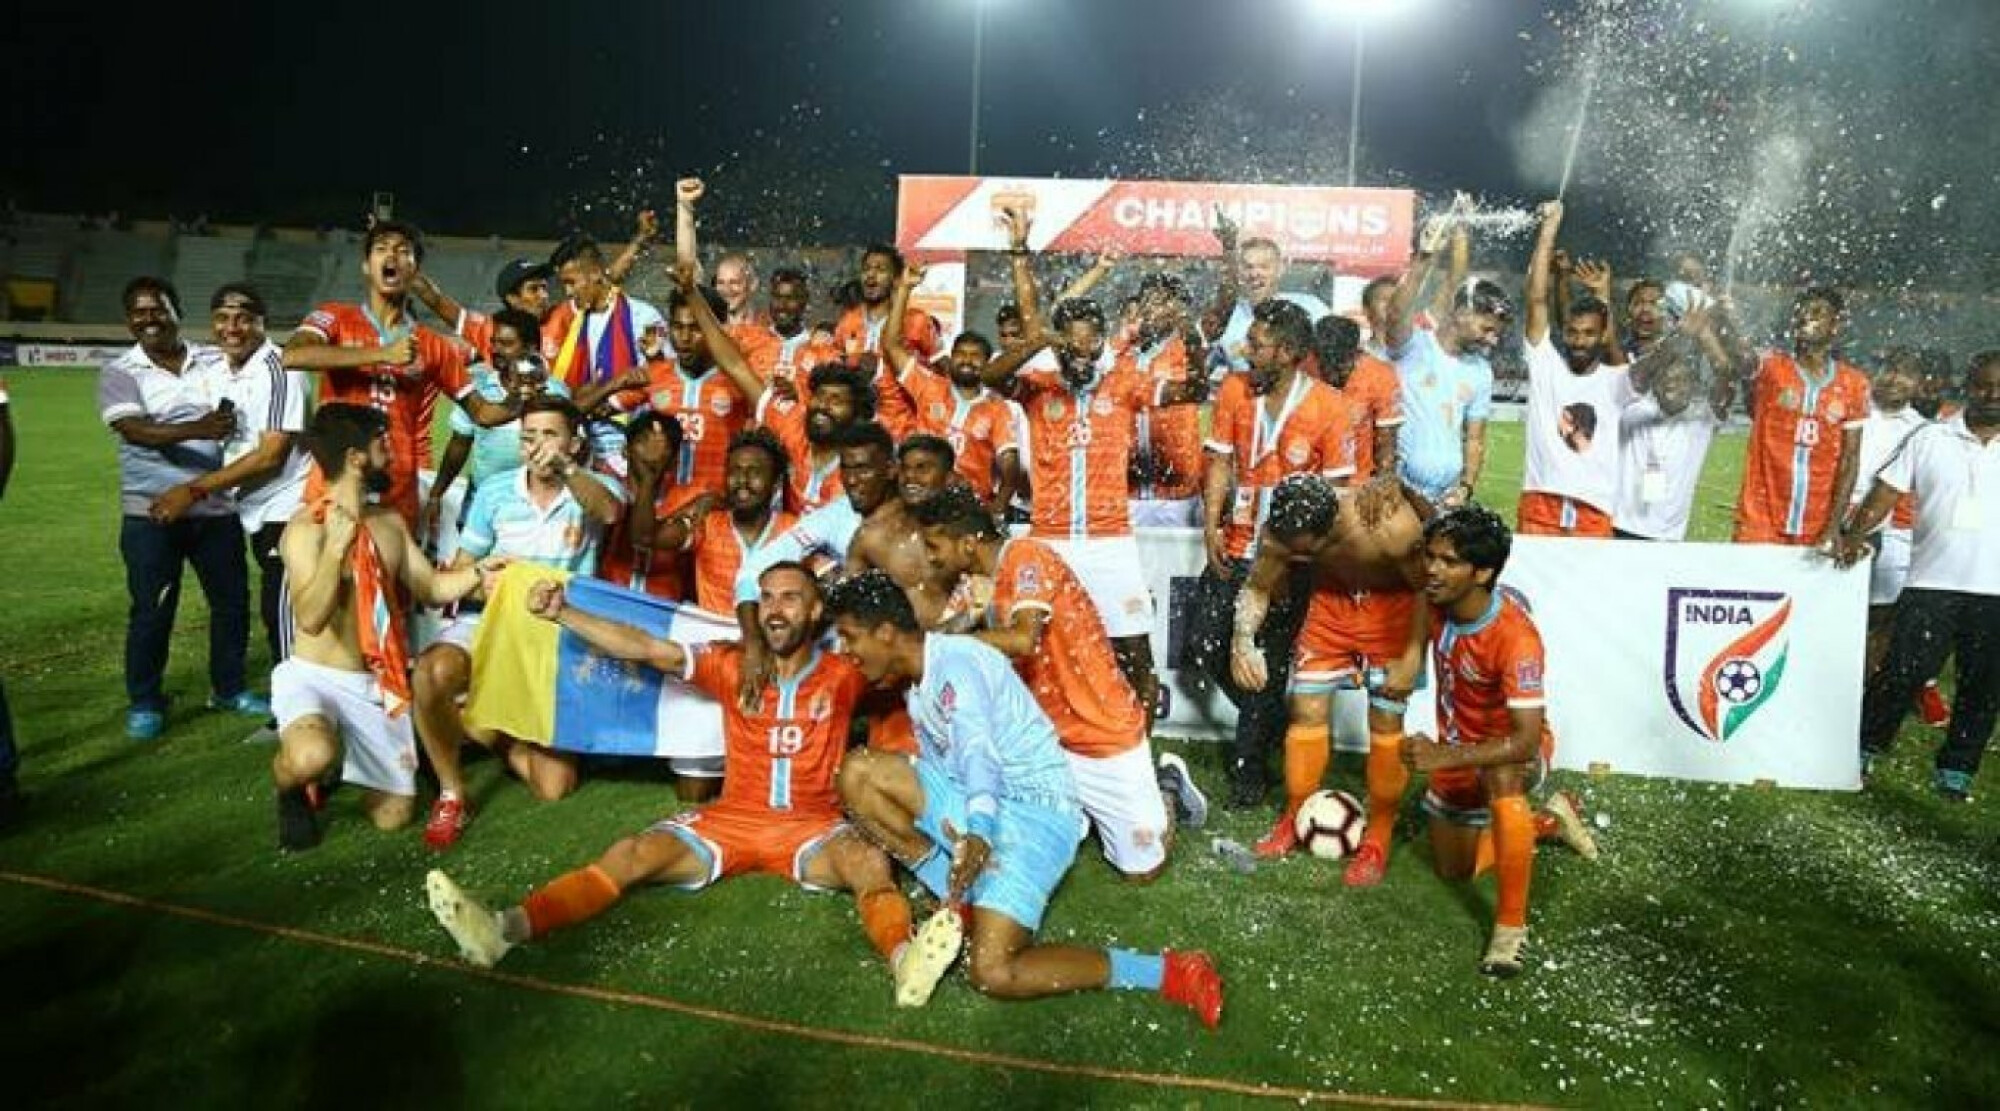 BREAKING: New trouble for AIFF-FSDL as AFC may block Chennai City FC's relegation to second division